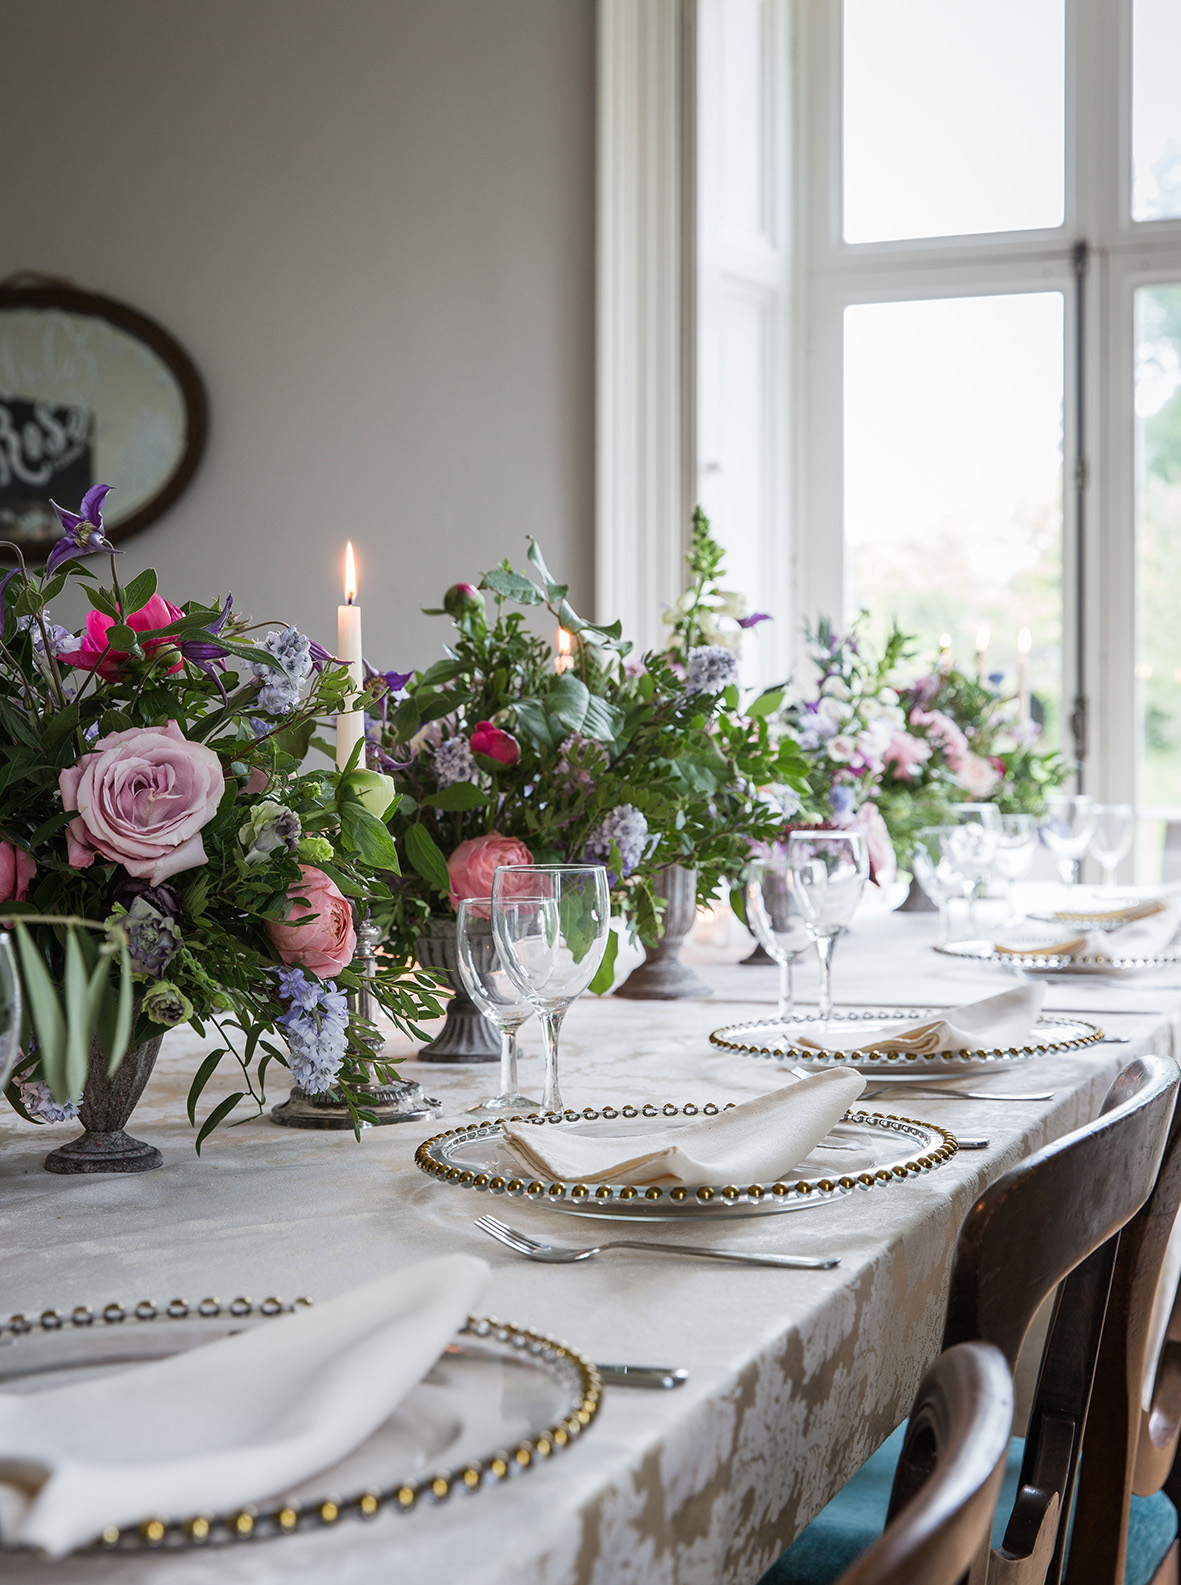 Private Dining Arrangements and Styling